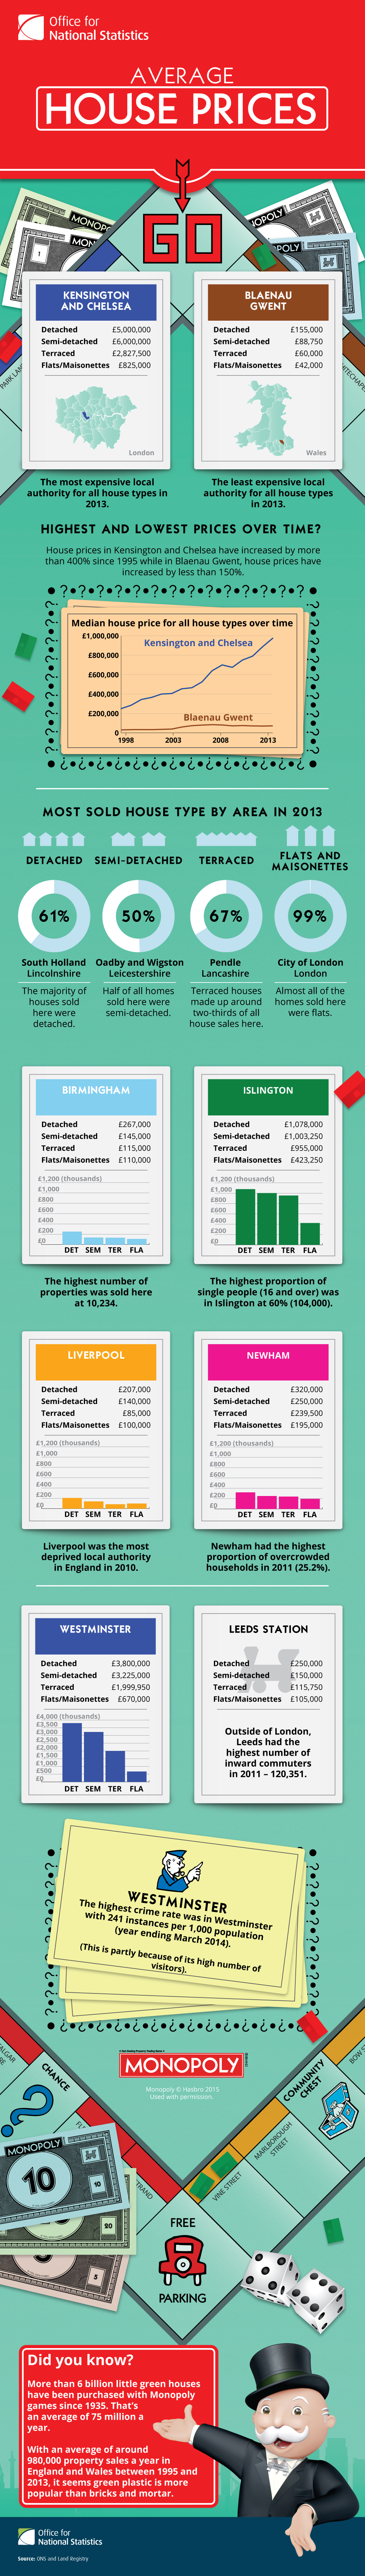 Kensington and Chelsea was the most expensive local authority for all house types in 2013, having increased 400% since 1995. Blaenau Gwent was the least expensive local authority for all house types in 2013, having increased by less than 150% since 1995. The most detached houses were sold in South Holland whilst the most semi-detached houses were sold in Oadby and Wigston. The most terrace houses were sold in Pendle, whilst the most flats were sold in the City of London. The highest number of properties was sold in Birmingham as 10,234. Newham had the highest proportion of overcrowded households in 2011 (25%). More than 6 billion little green Monopoly houses have been purchased with Monopoly games since 1935. With an average of around 980,000 property sales a year in England and Wales between 1995 and 2013, it seems green plastic is more popular than bricks and mortar.